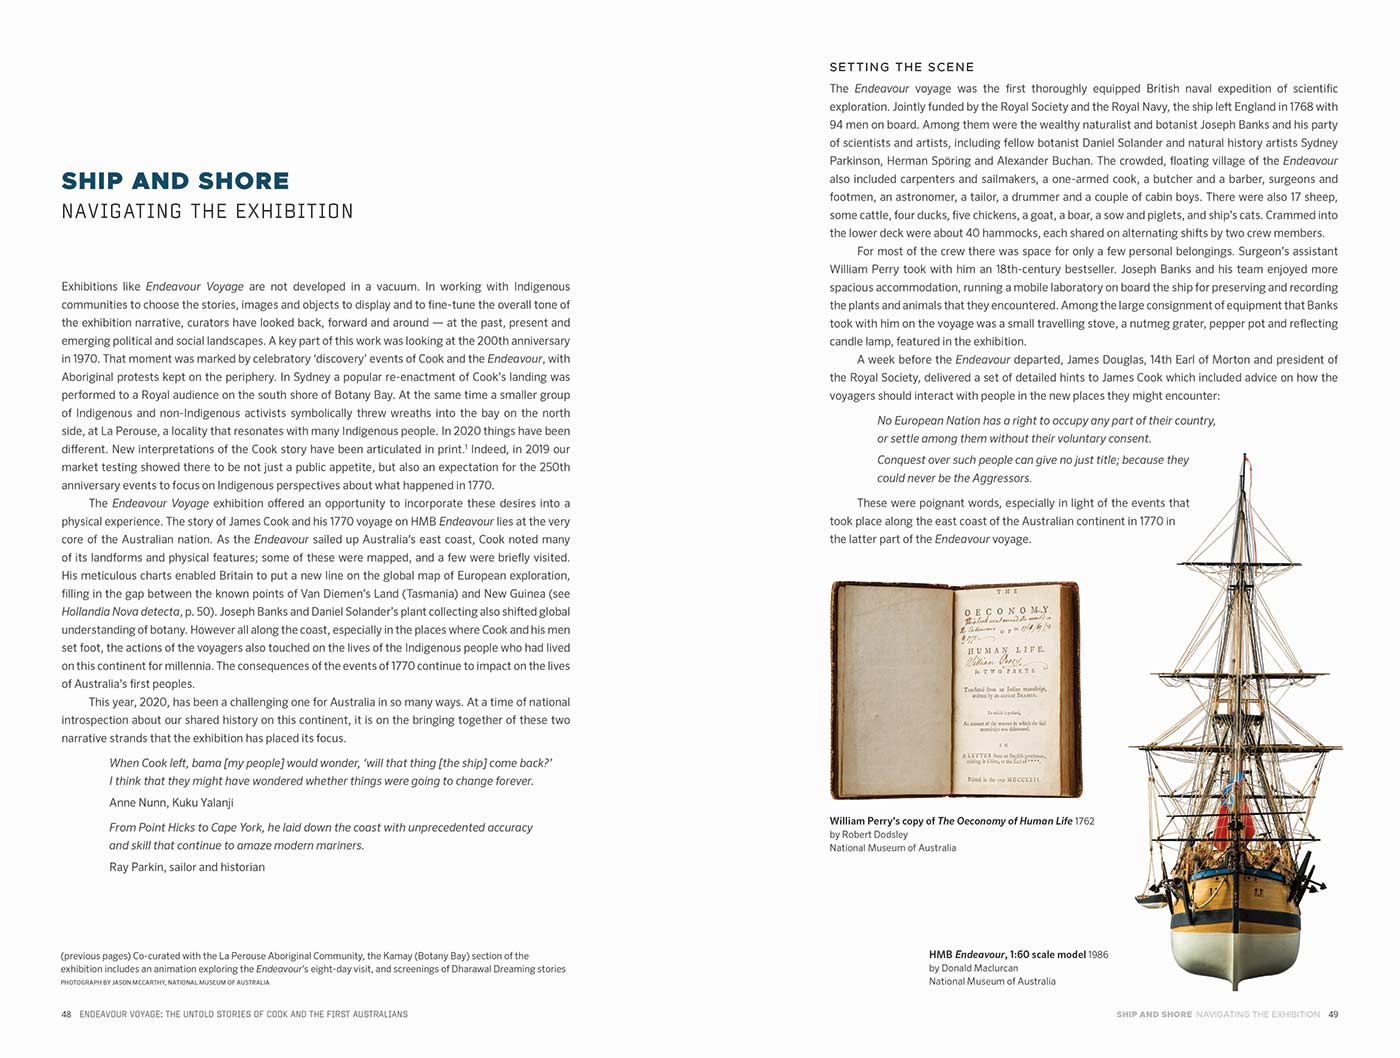 Sample page for the Endeavour Voyages: The Untold Stories of Cook and the First Australians catalogue. The page features the title 'SHIP AND SHORE/NAVIGATING THE EXHIBITION', some body text, and images of William Perry's copy of The Oeconomy of Human Life and a model of the HMB Endeavour. - click to view larger image